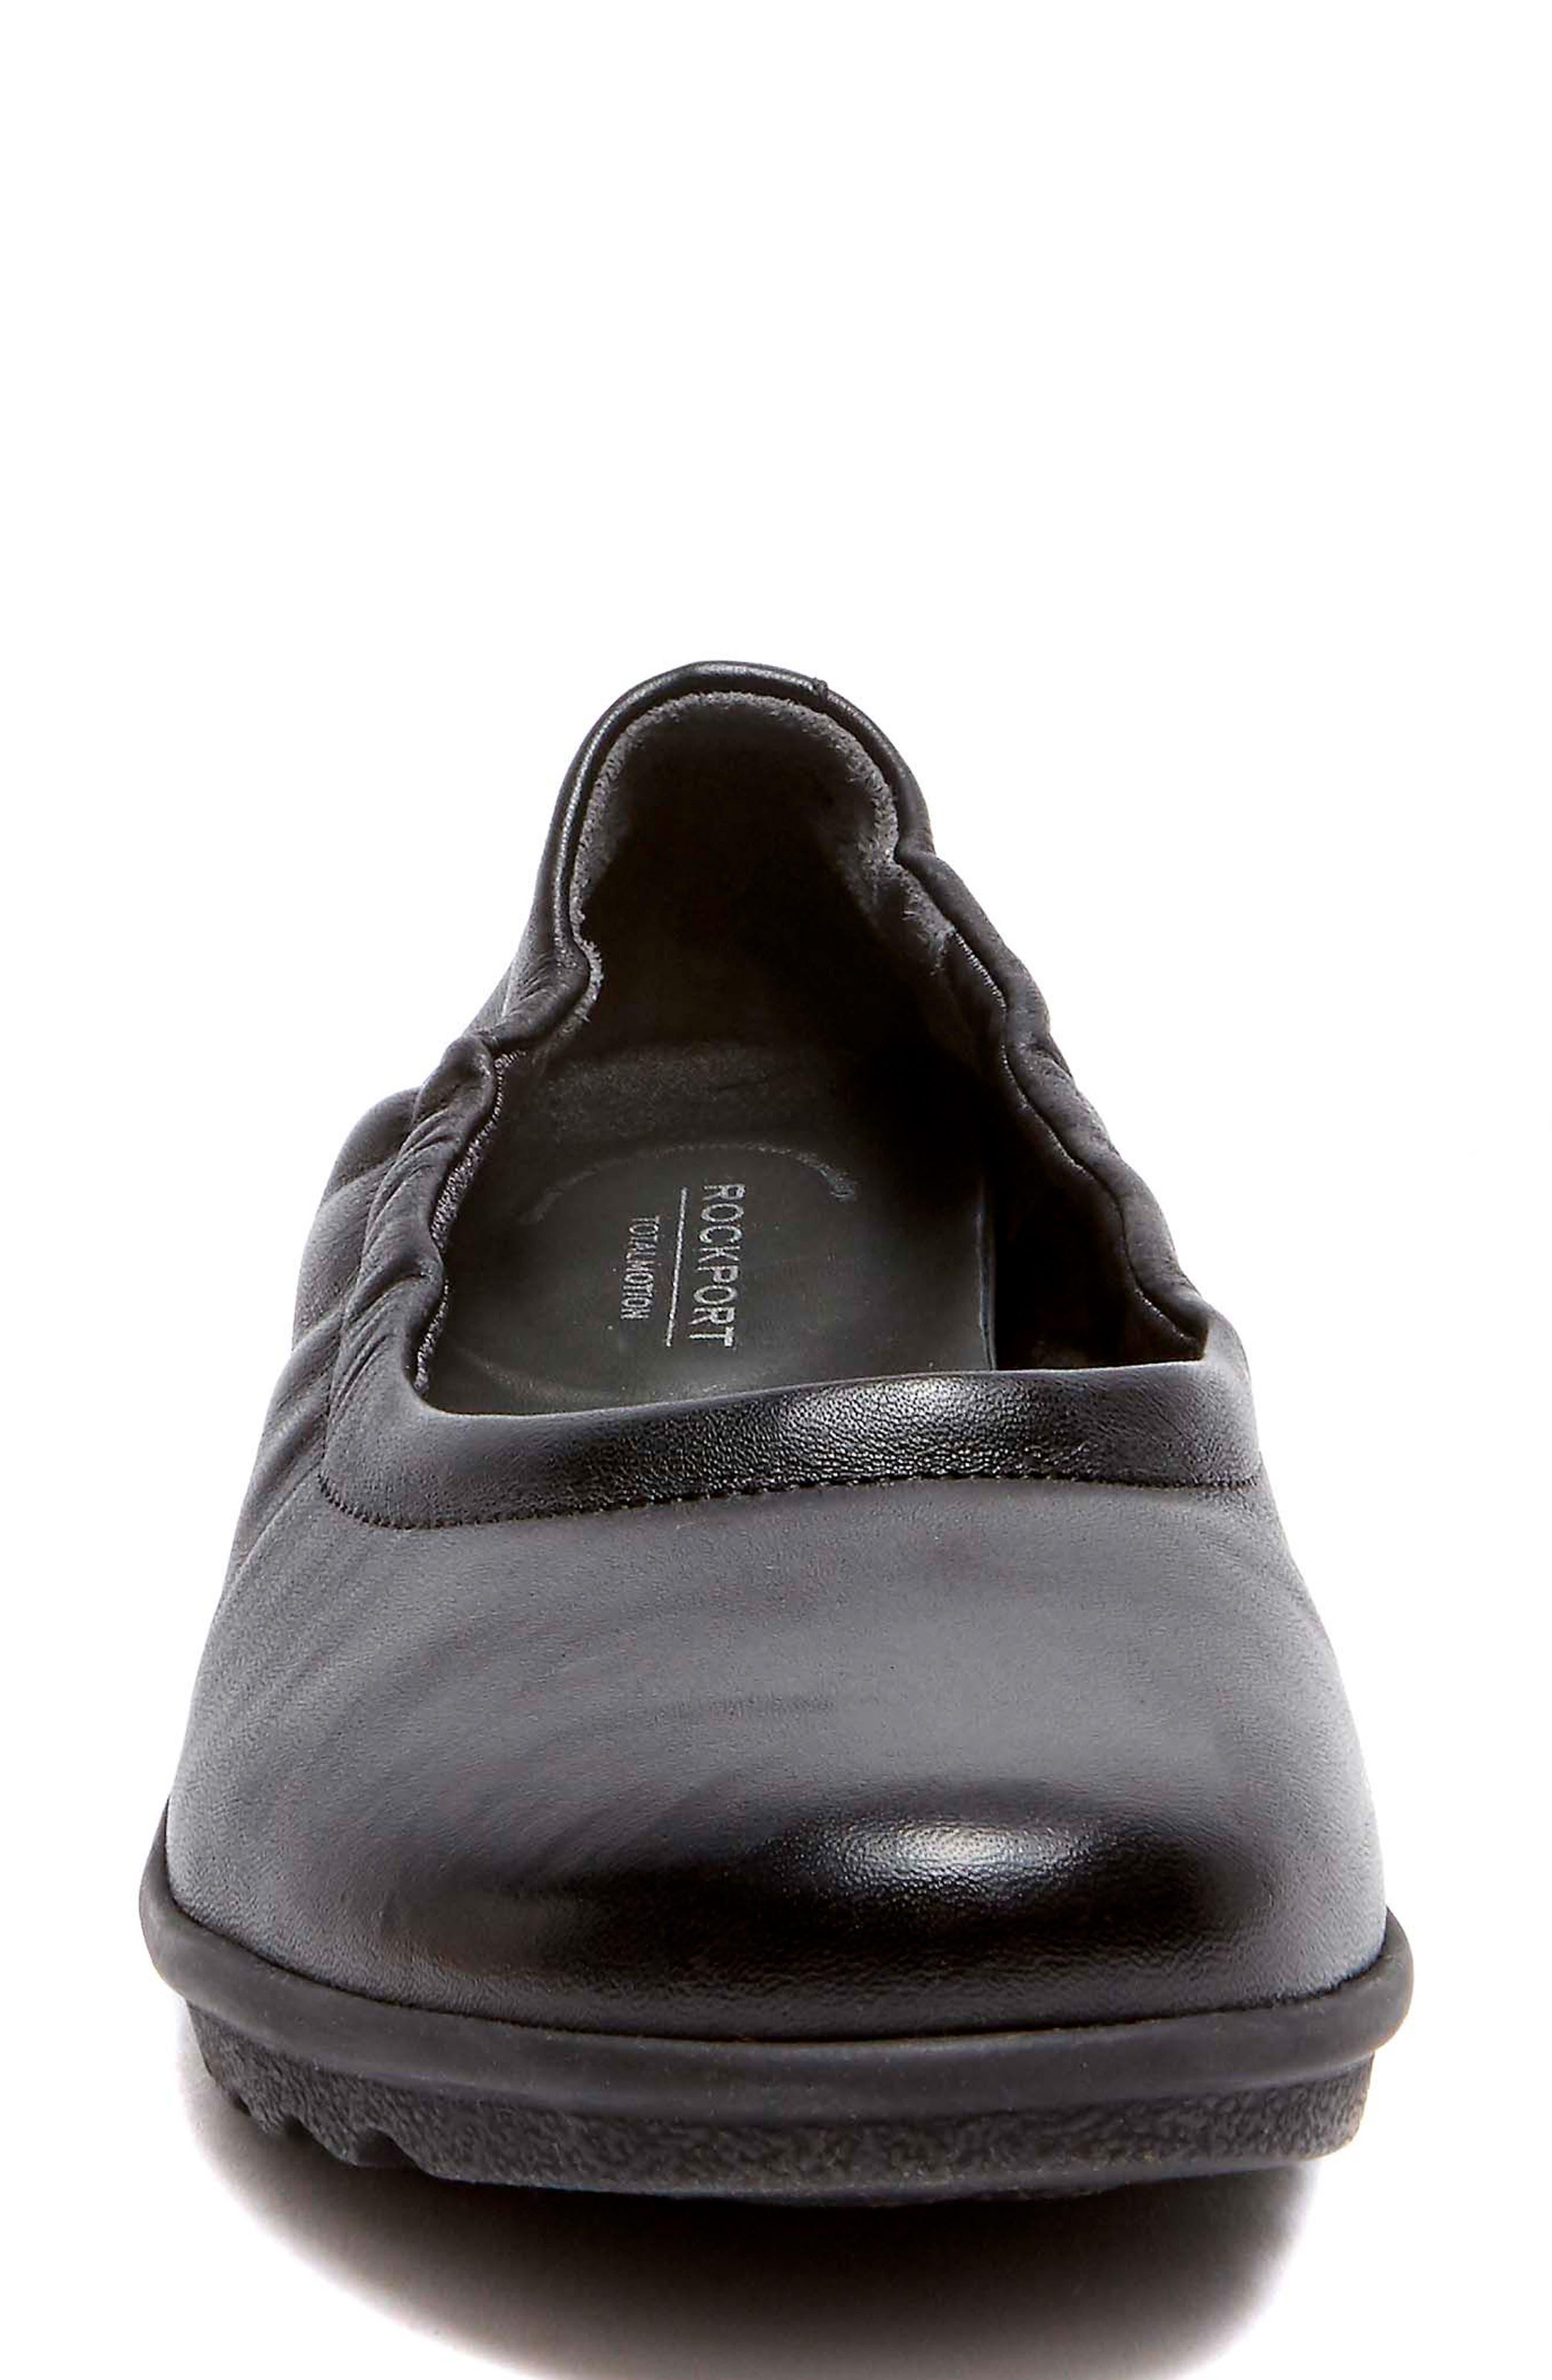 Chenole Ballet Flat,                             Alternate thumbnail 4, color,                             BLACK LEATHER